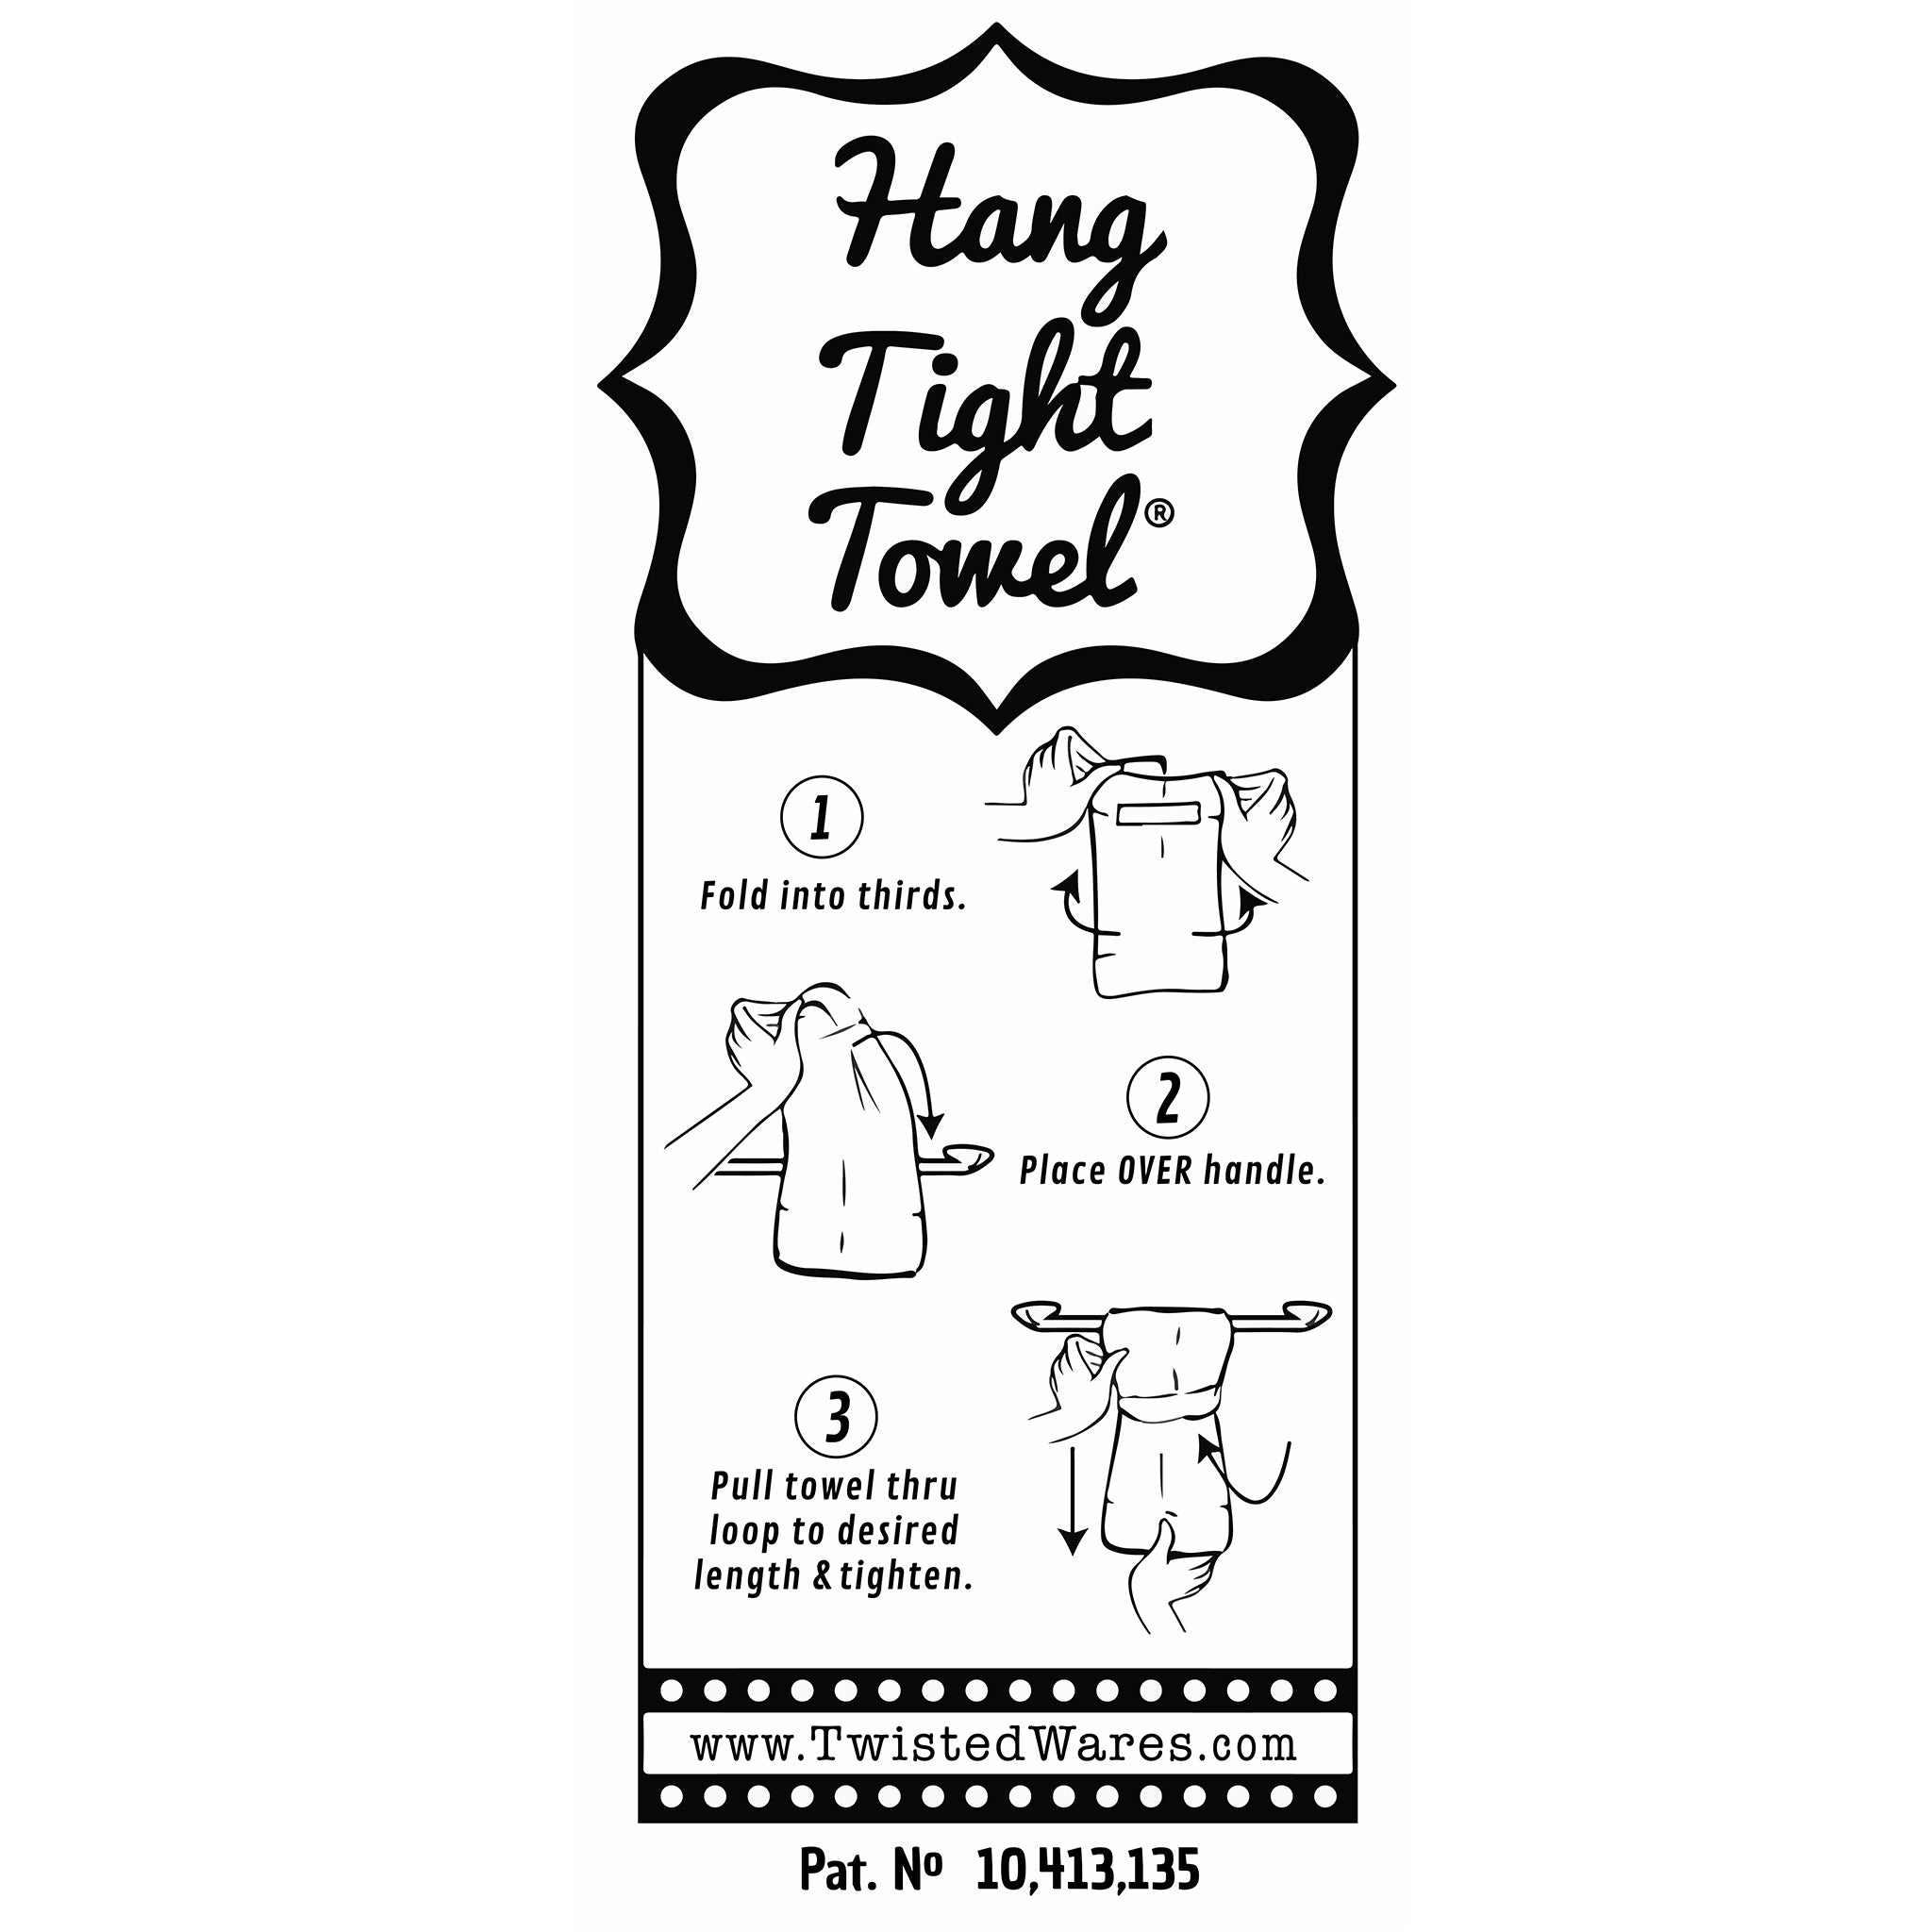 I Love Jesus... But I Drink a Little Flour Sack Hang Tight Towel®